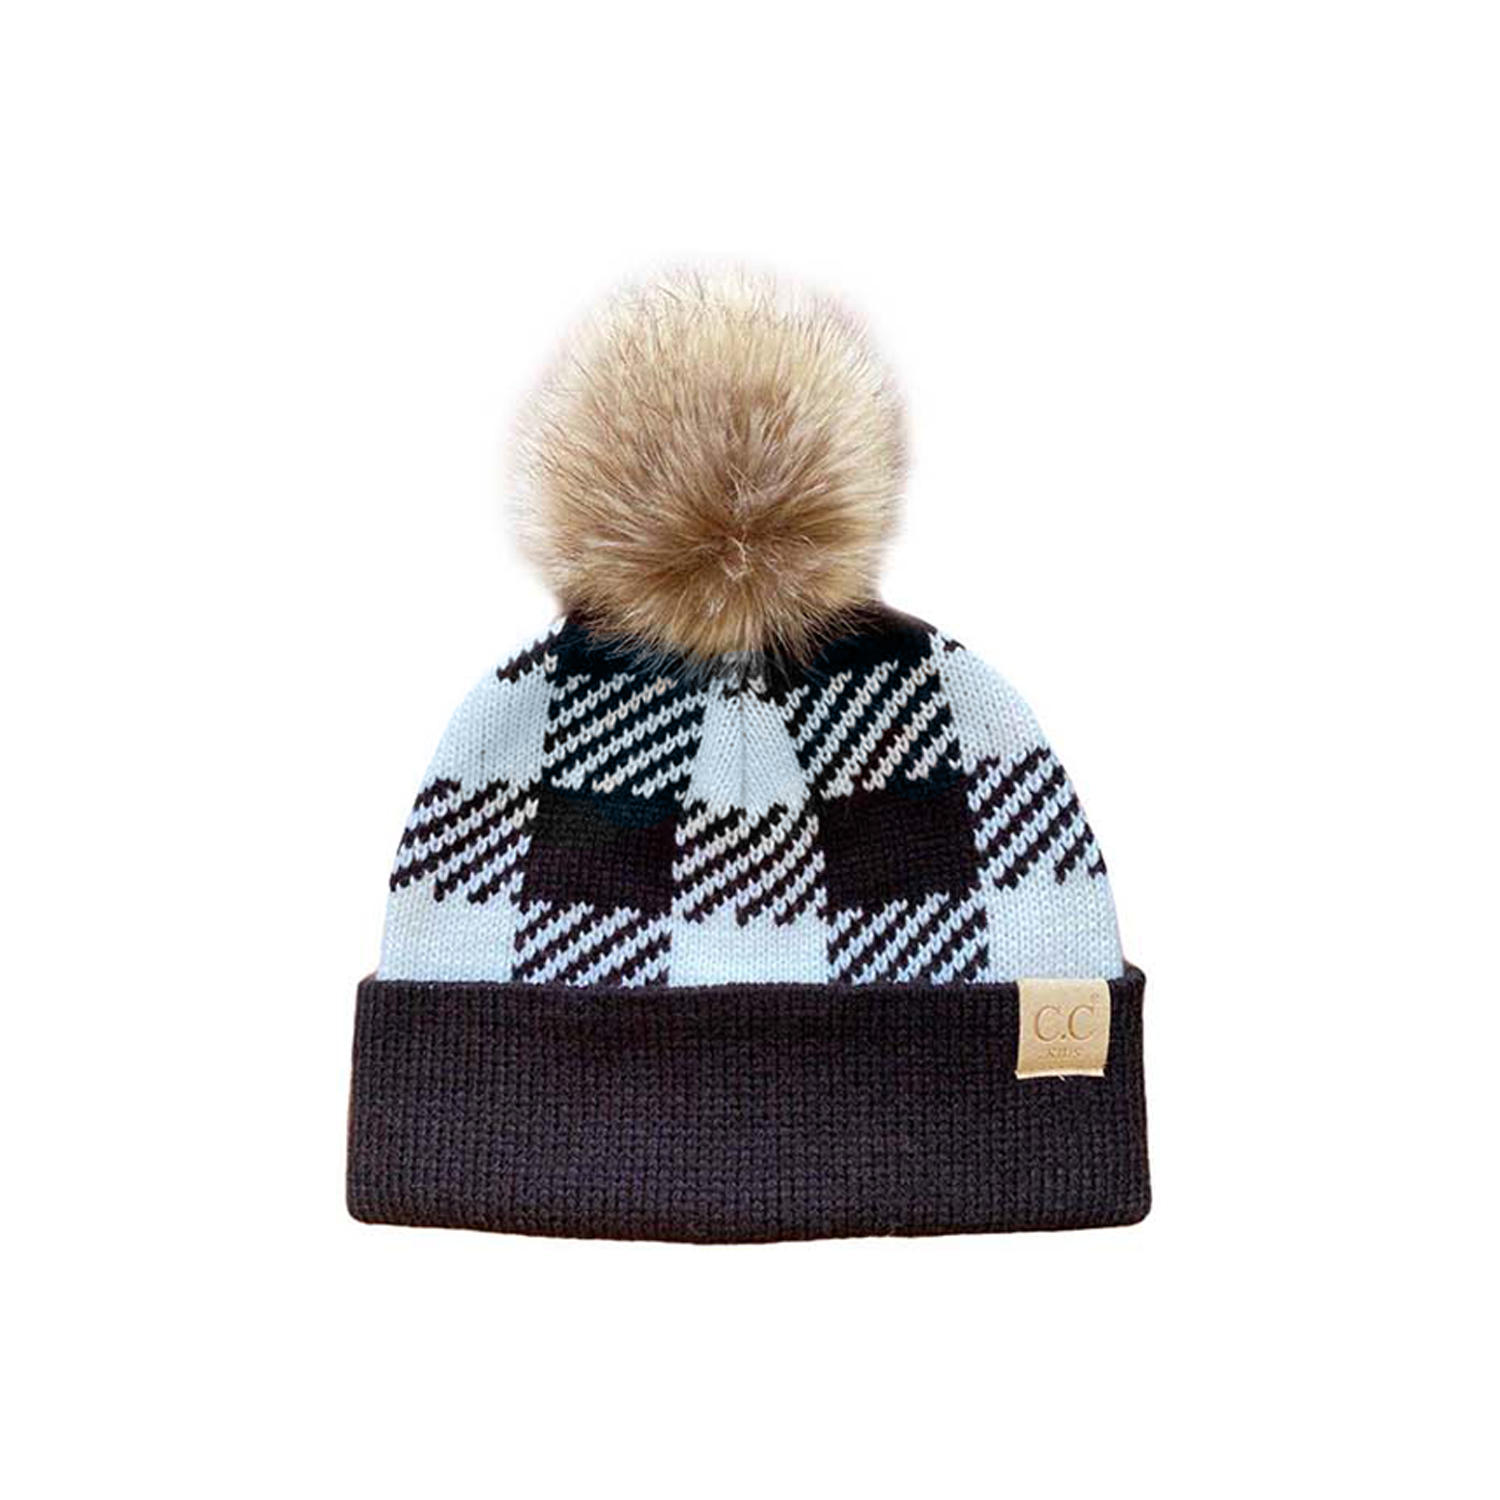 BP-43-KIDS Buffalo Plaid Beanie w/Faux Fur Pom - White/Black